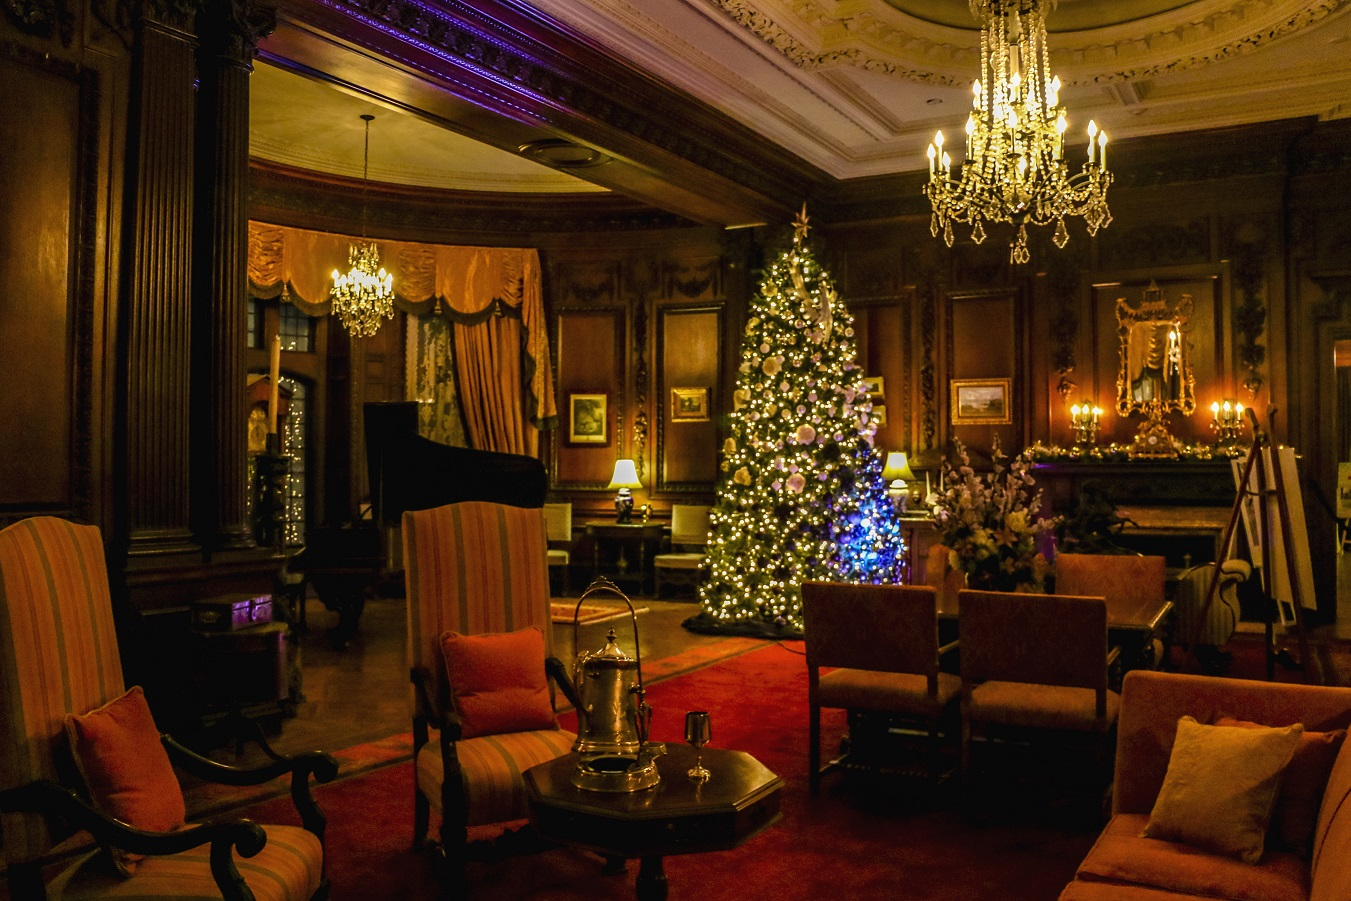 Casa Loma Gets Its Halls Decked Out By Big Name Designers